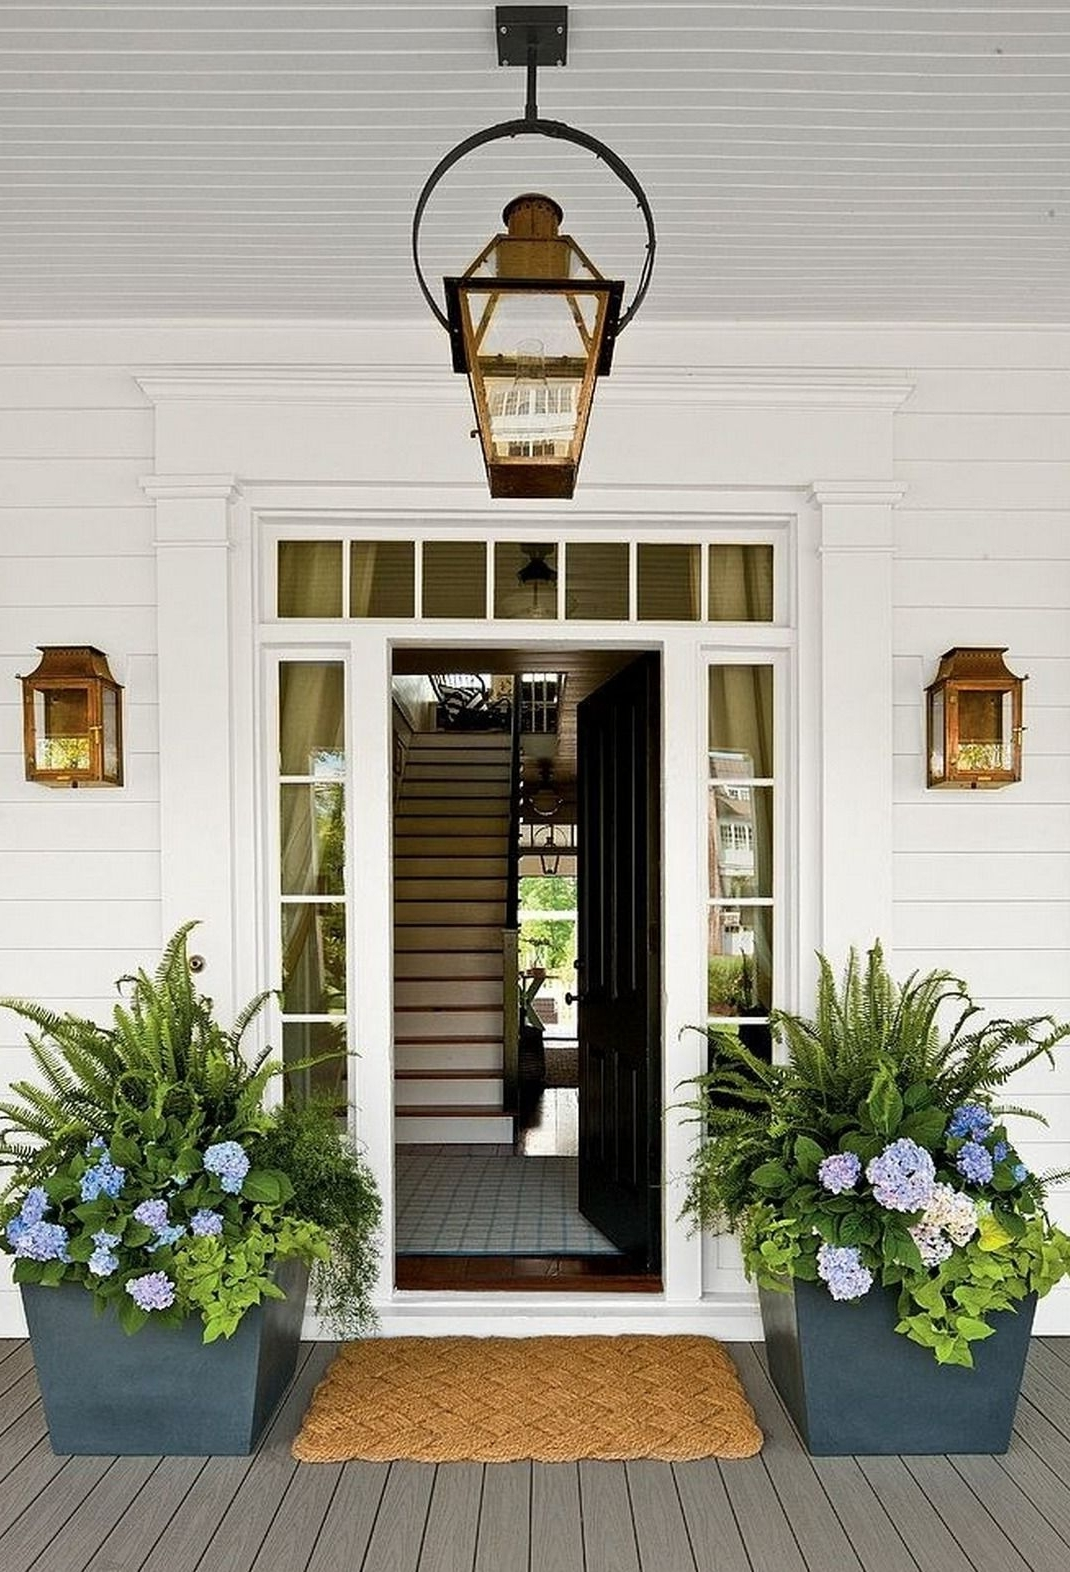 Preferred Outdoor Lanterns For Front Porch For Exterior Lighting {Charming Outdoor Lanterns (Gallery 10 of 20)